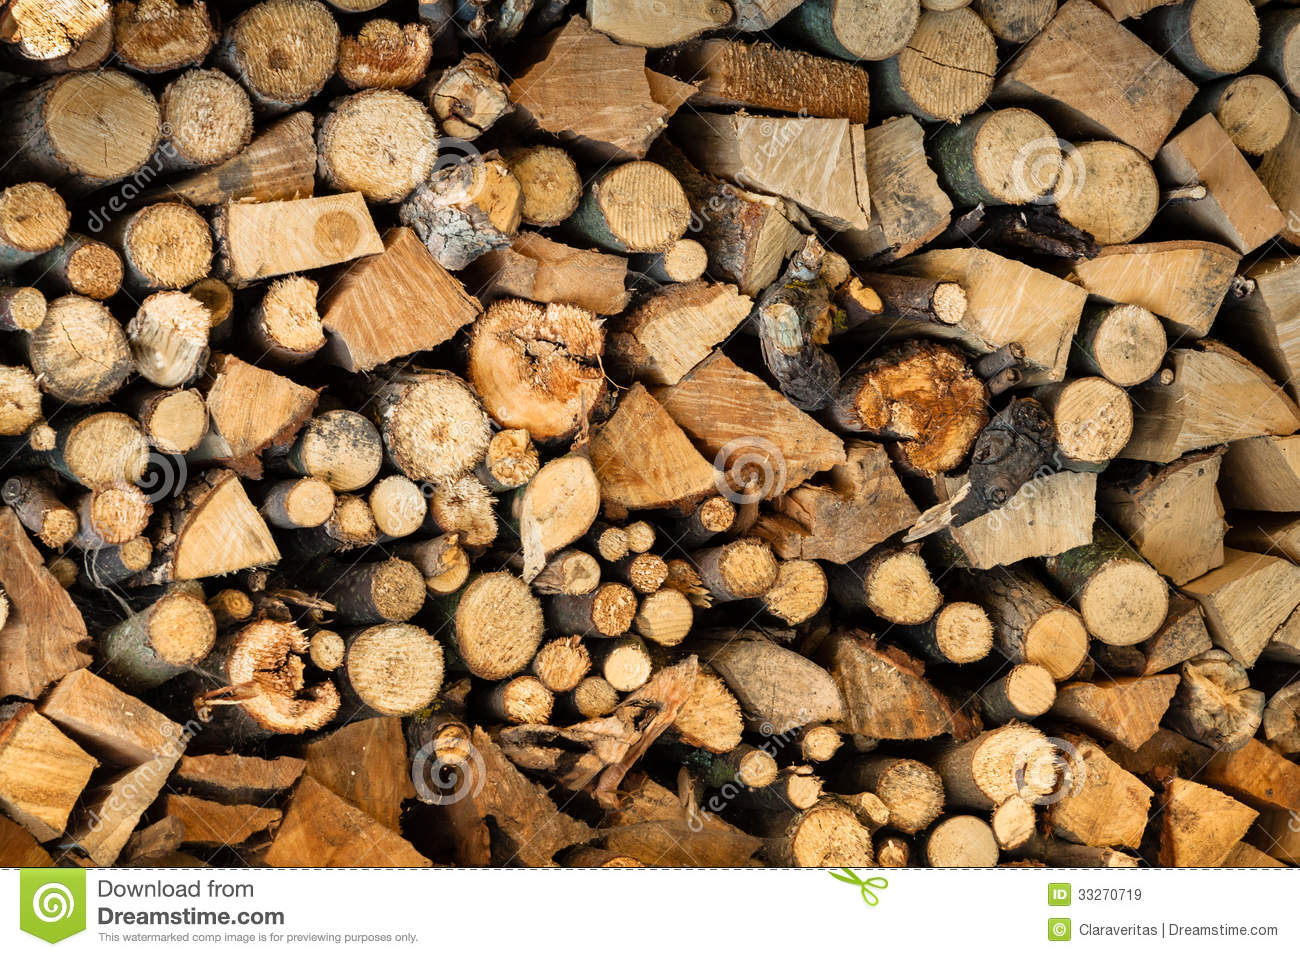 how to sell your trees for lumber